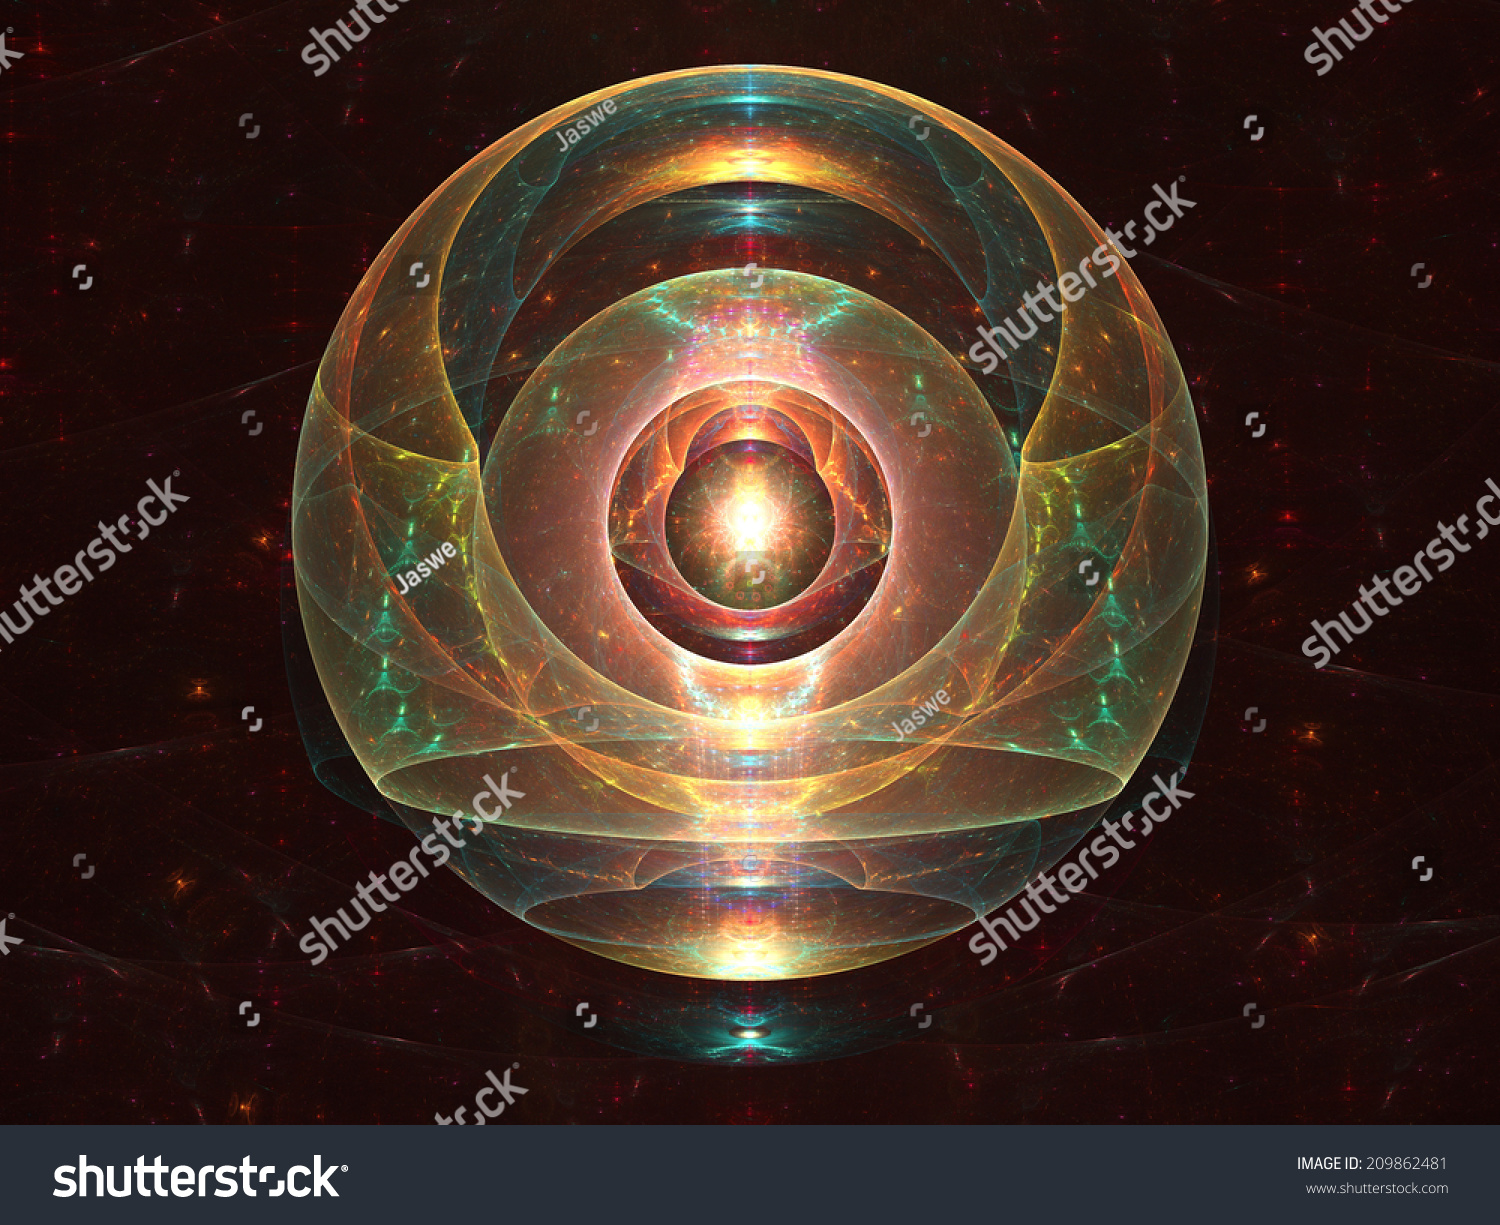 Cosmic Fantasy Fractal Blacklight: Abstract Fractal Orb Composed Layers Colorful Stock